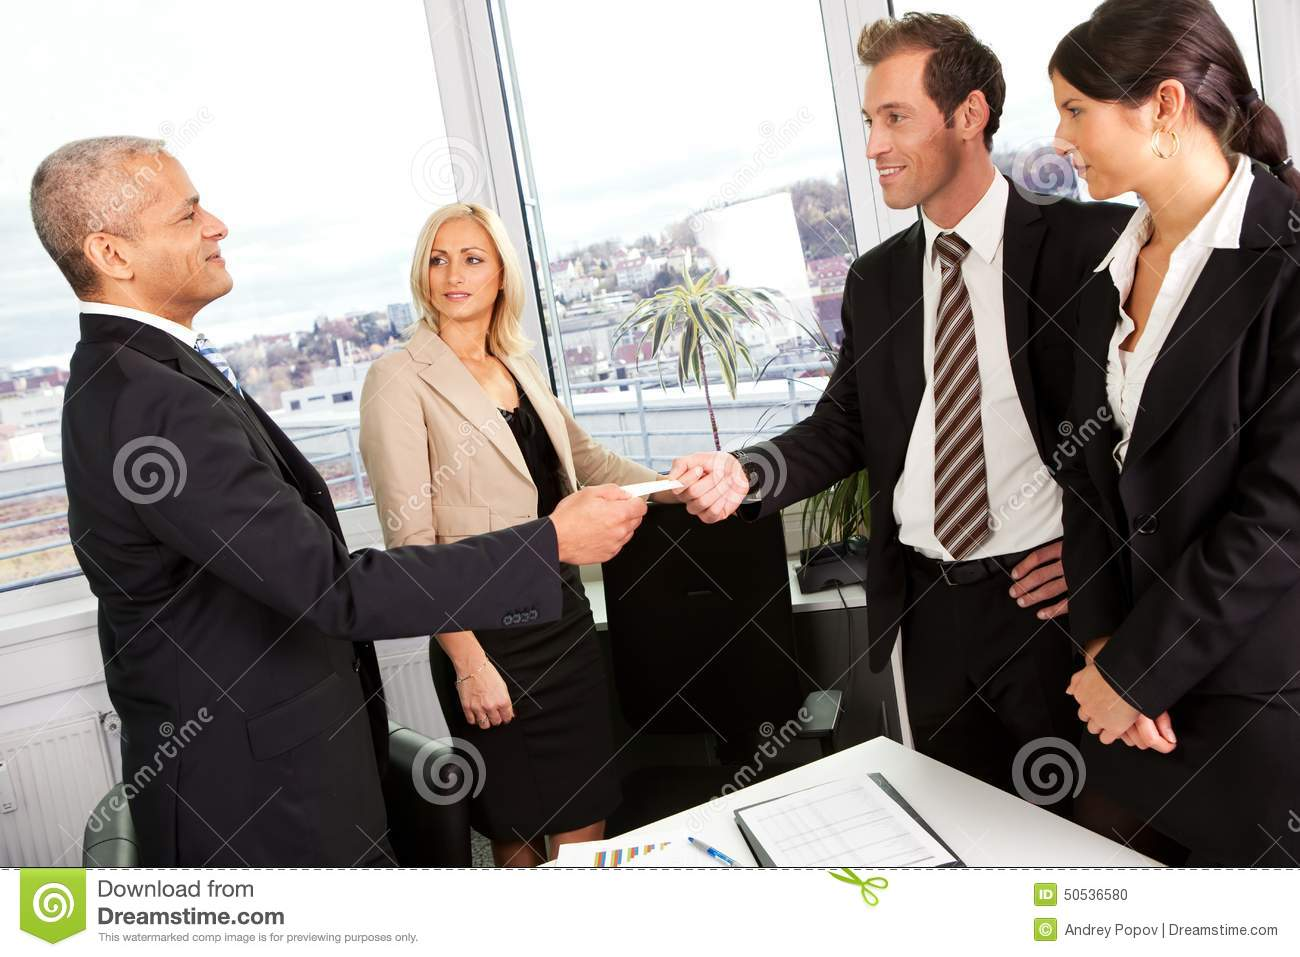 Business People Exchange Business Cards Stock Photo - Image of ...